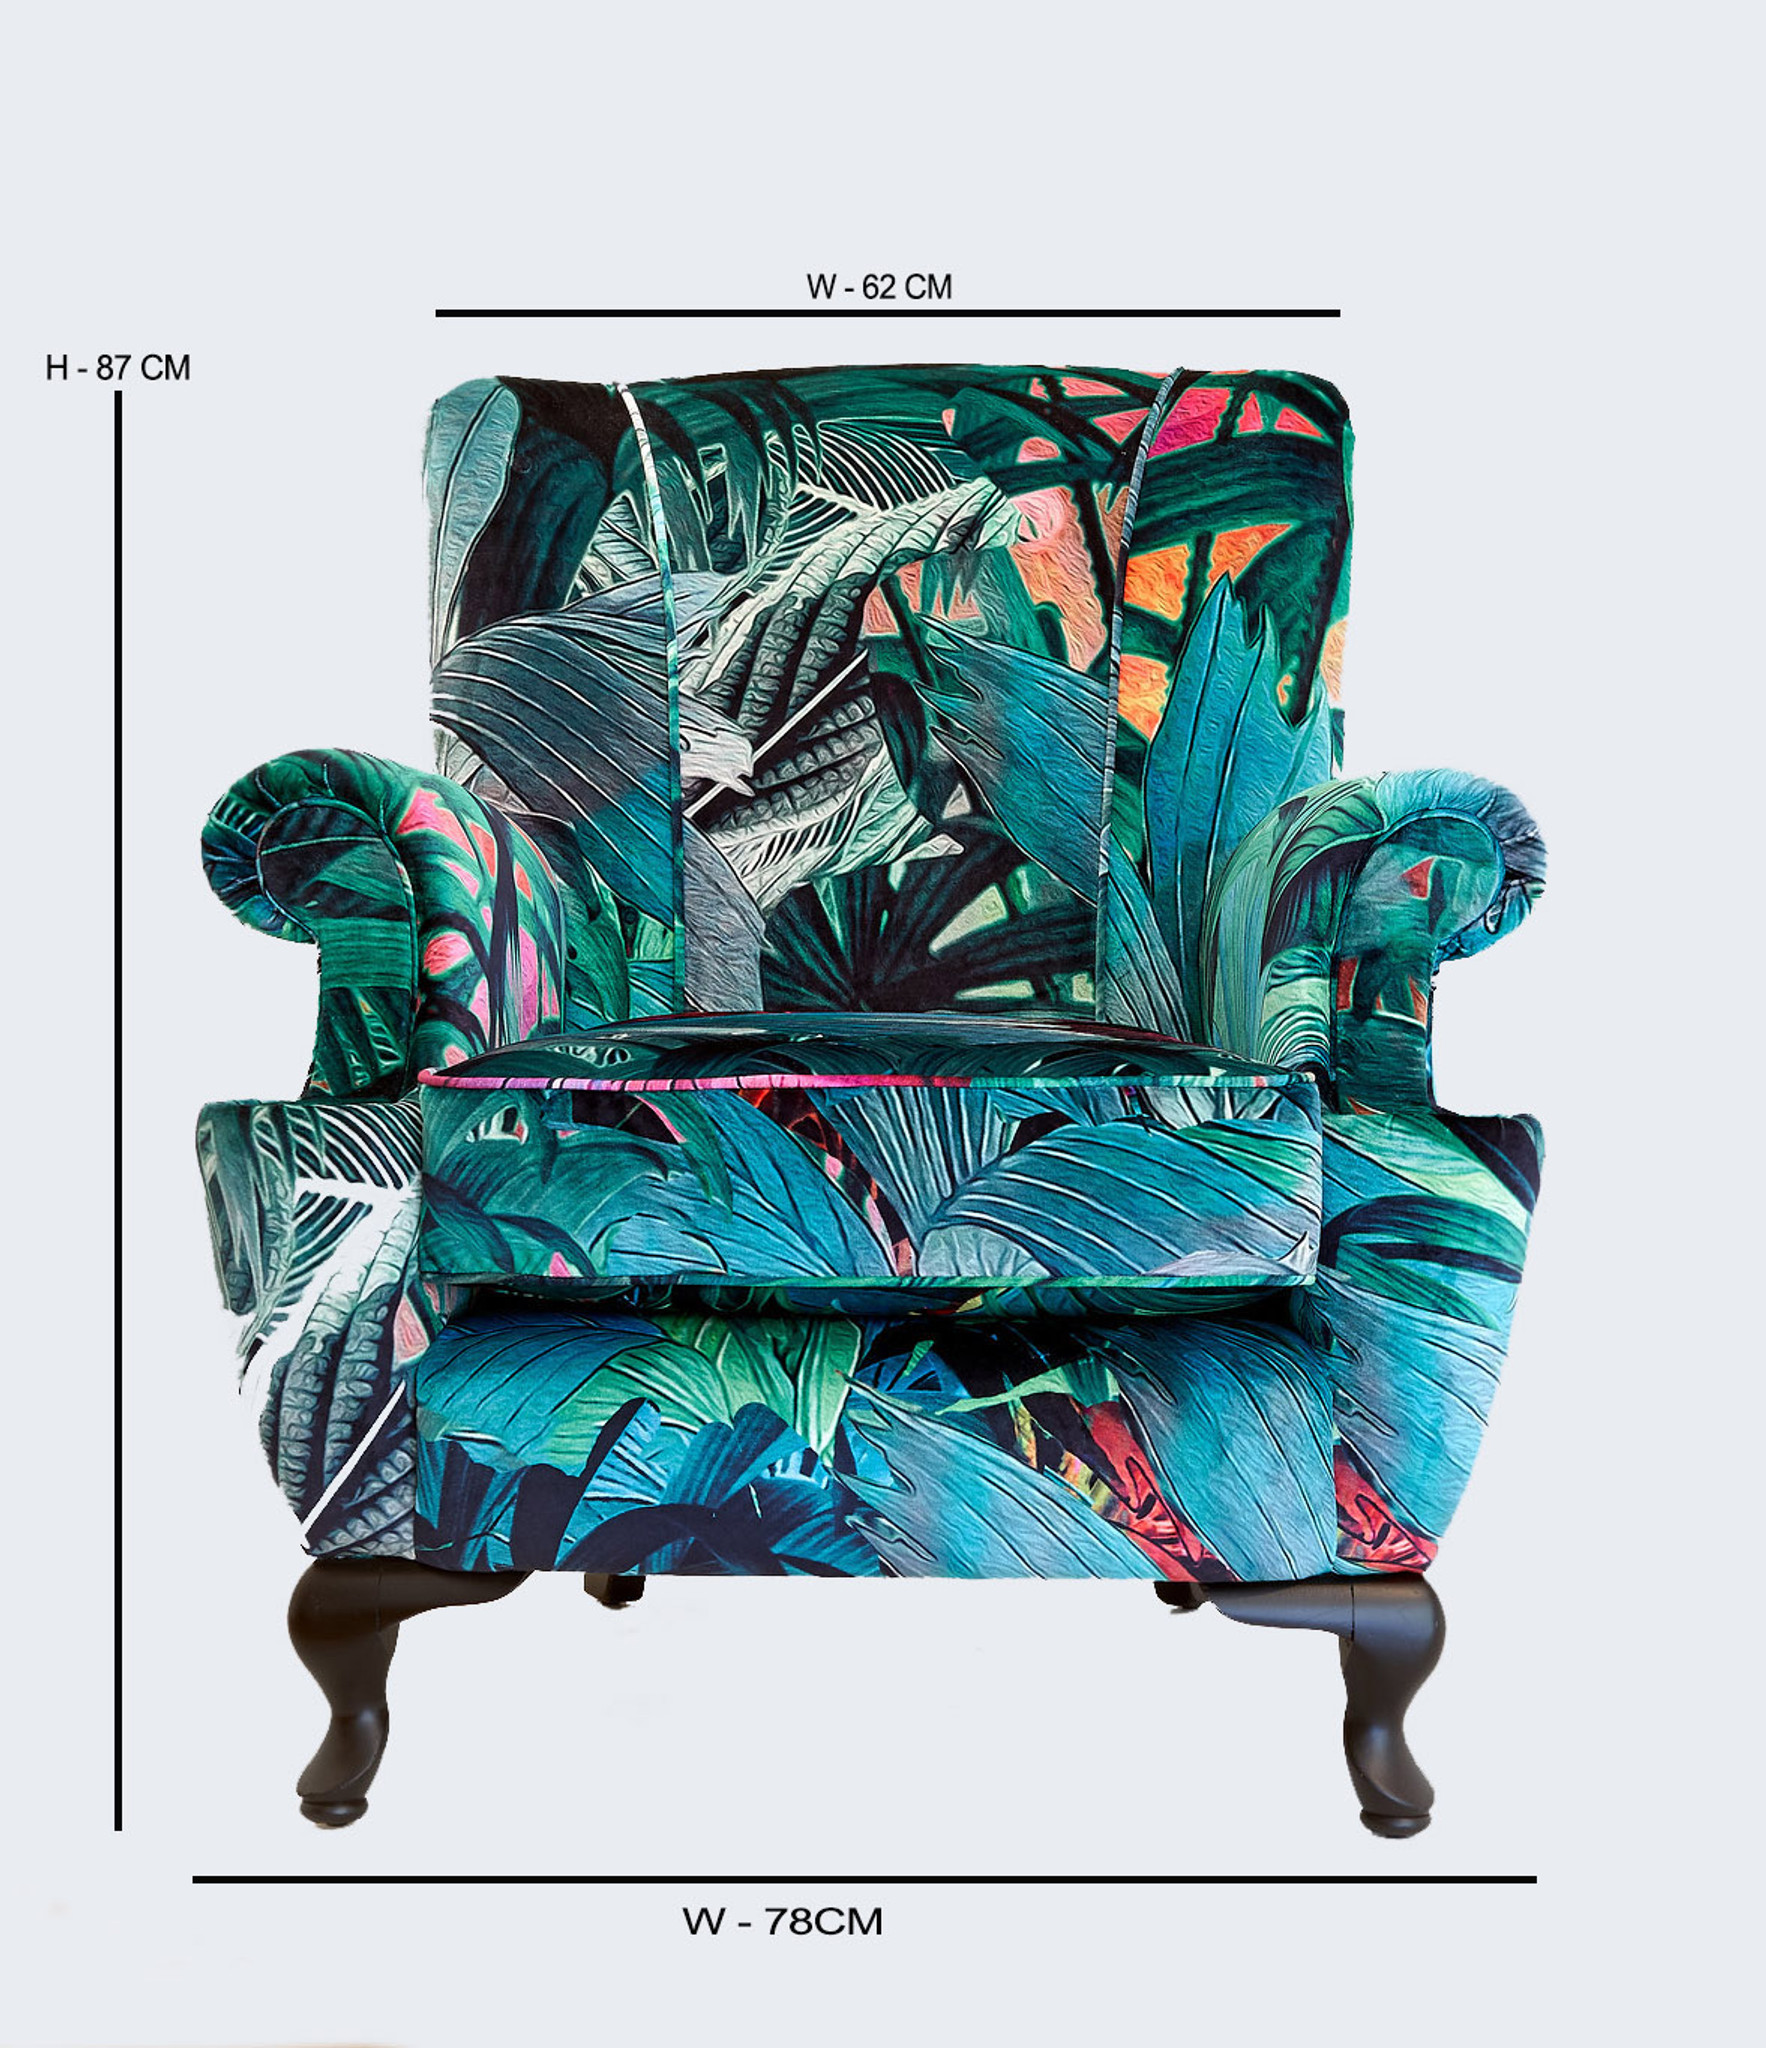 VINTAGE CHAIR -  JUNGLE VIBE UPHOLSTERY